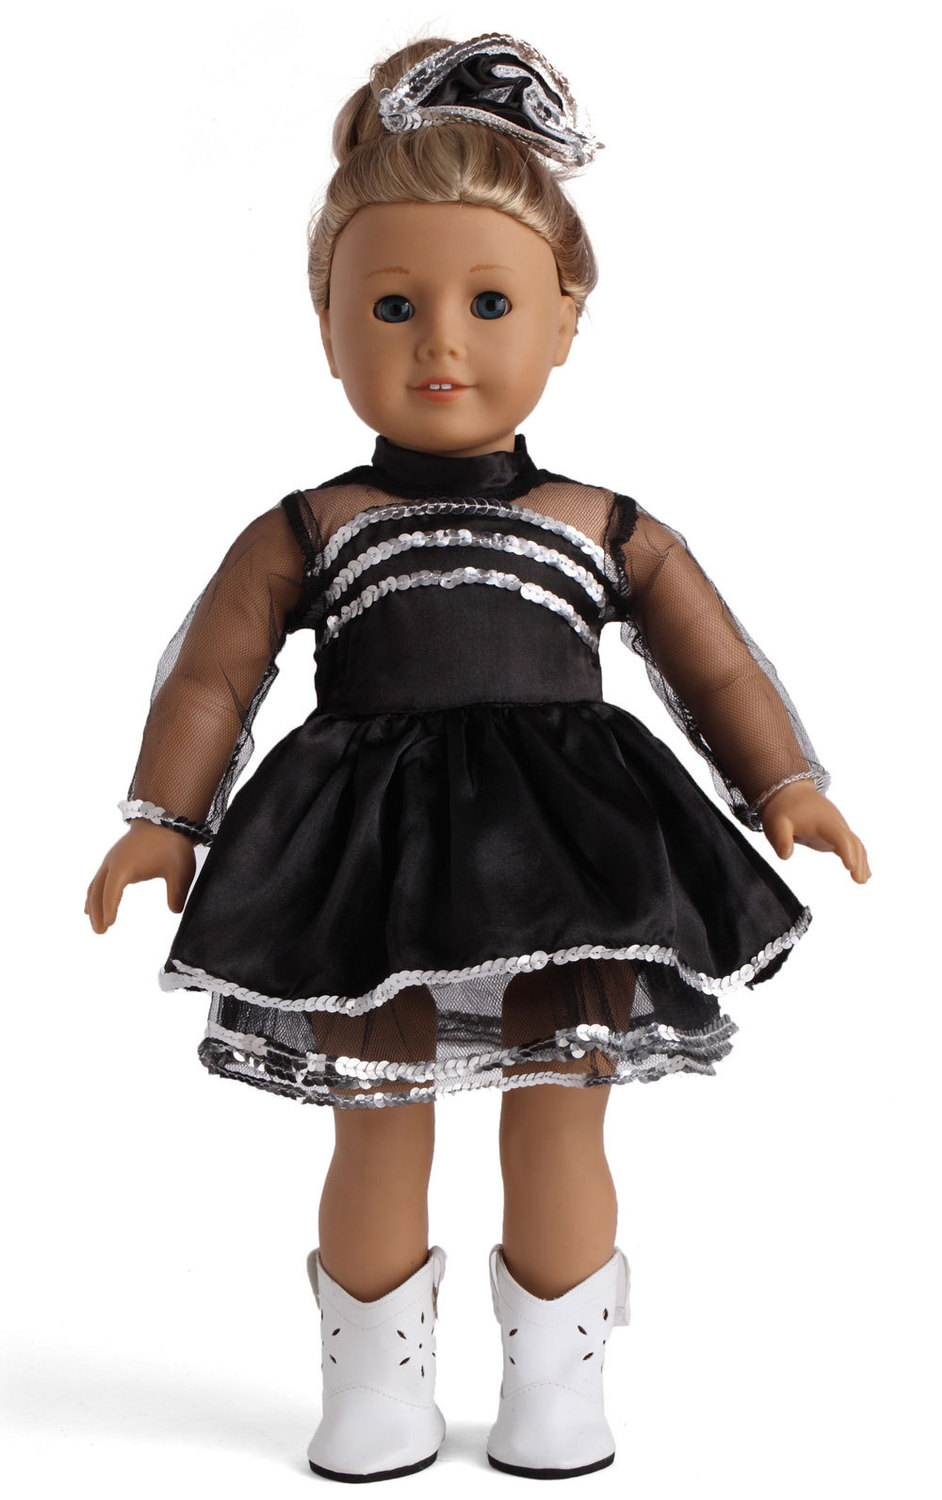 New 18 Inch American Girl Doll Black Dancing Dress For -4465